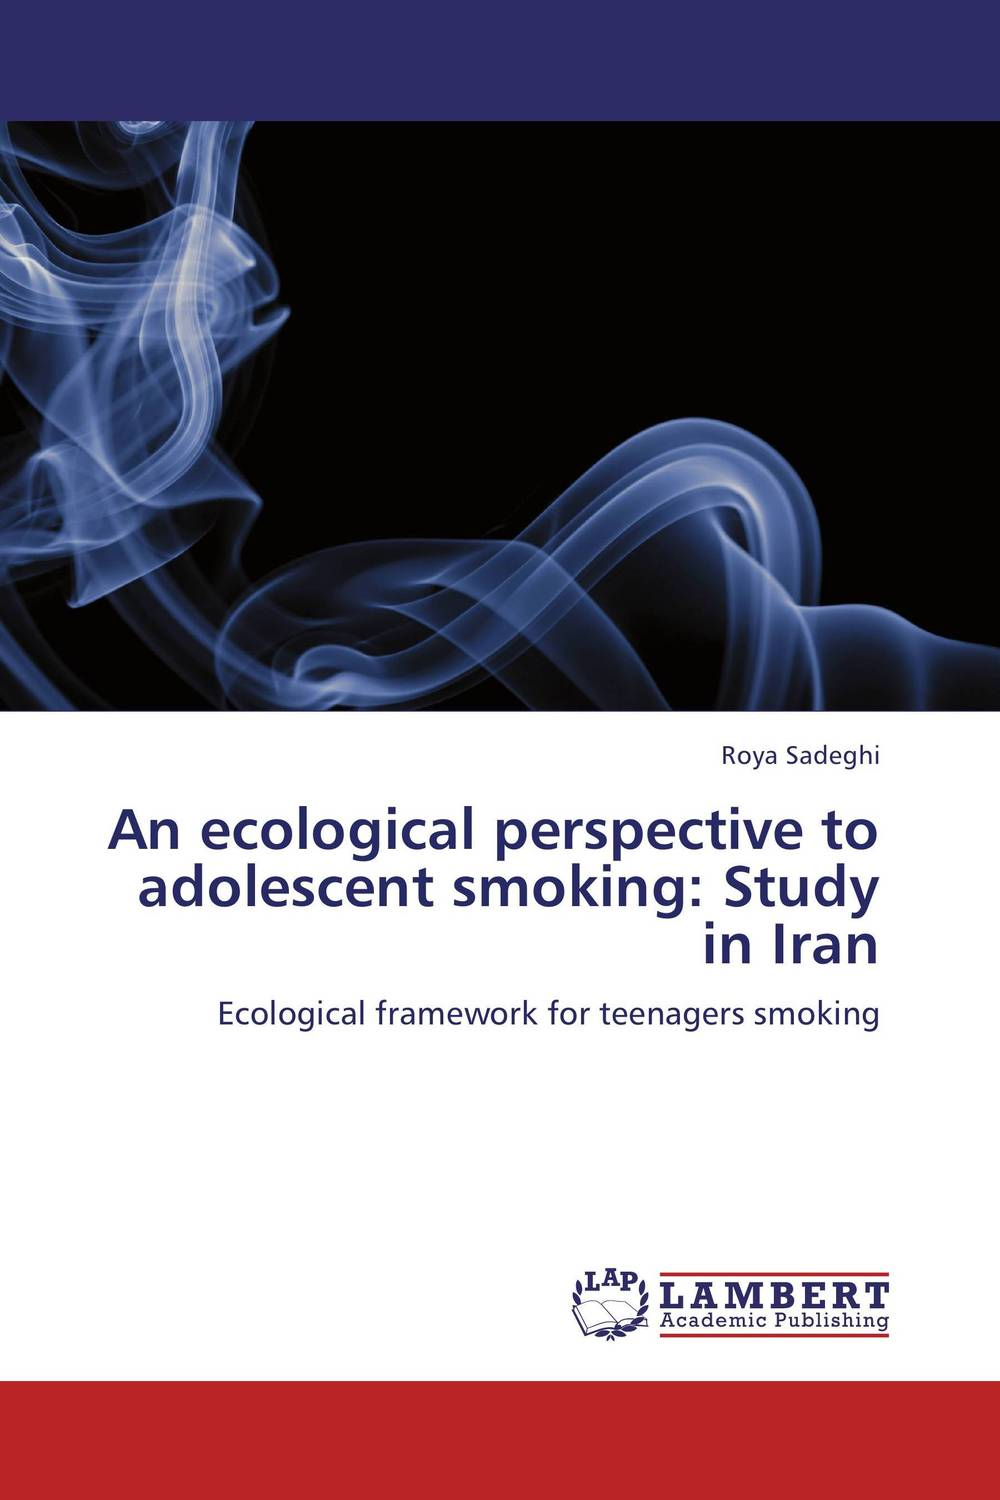 An ecological perspective to adolescent smoking: Study in Iran jaspreet kashyap active transport to school in adolescent s